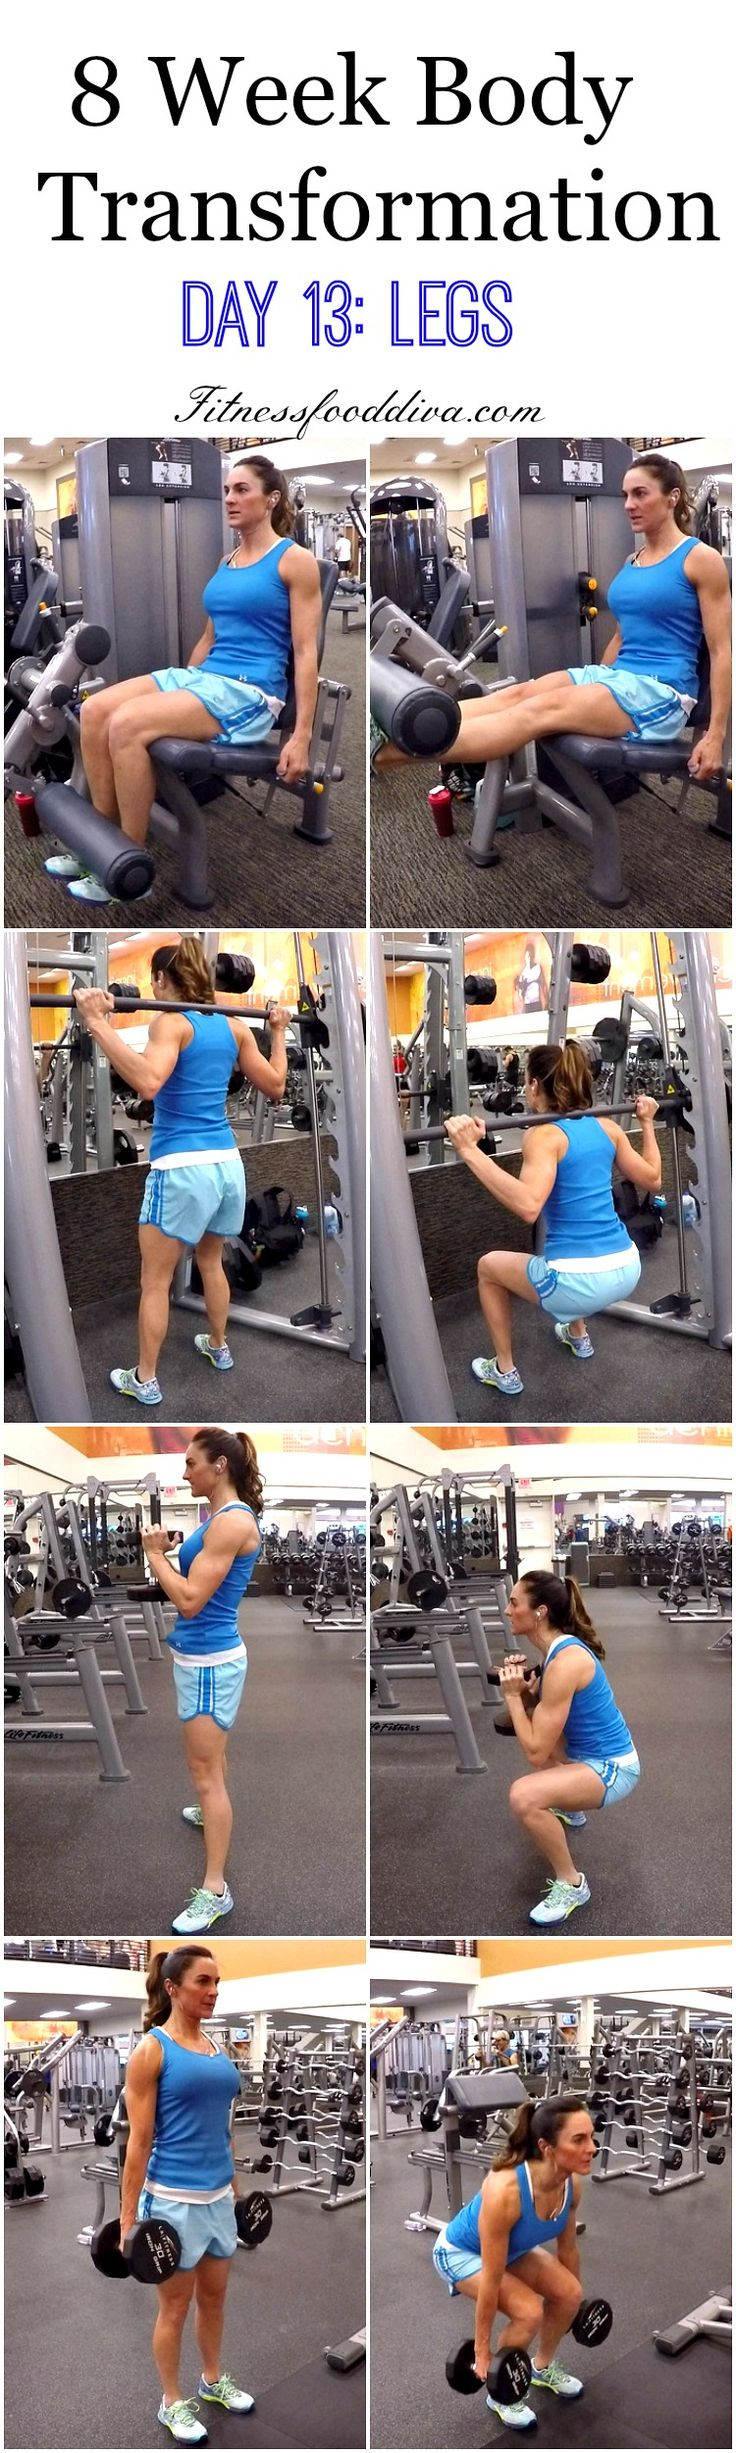 25+ Best Ideas about Body Transformations on Pinterest ...